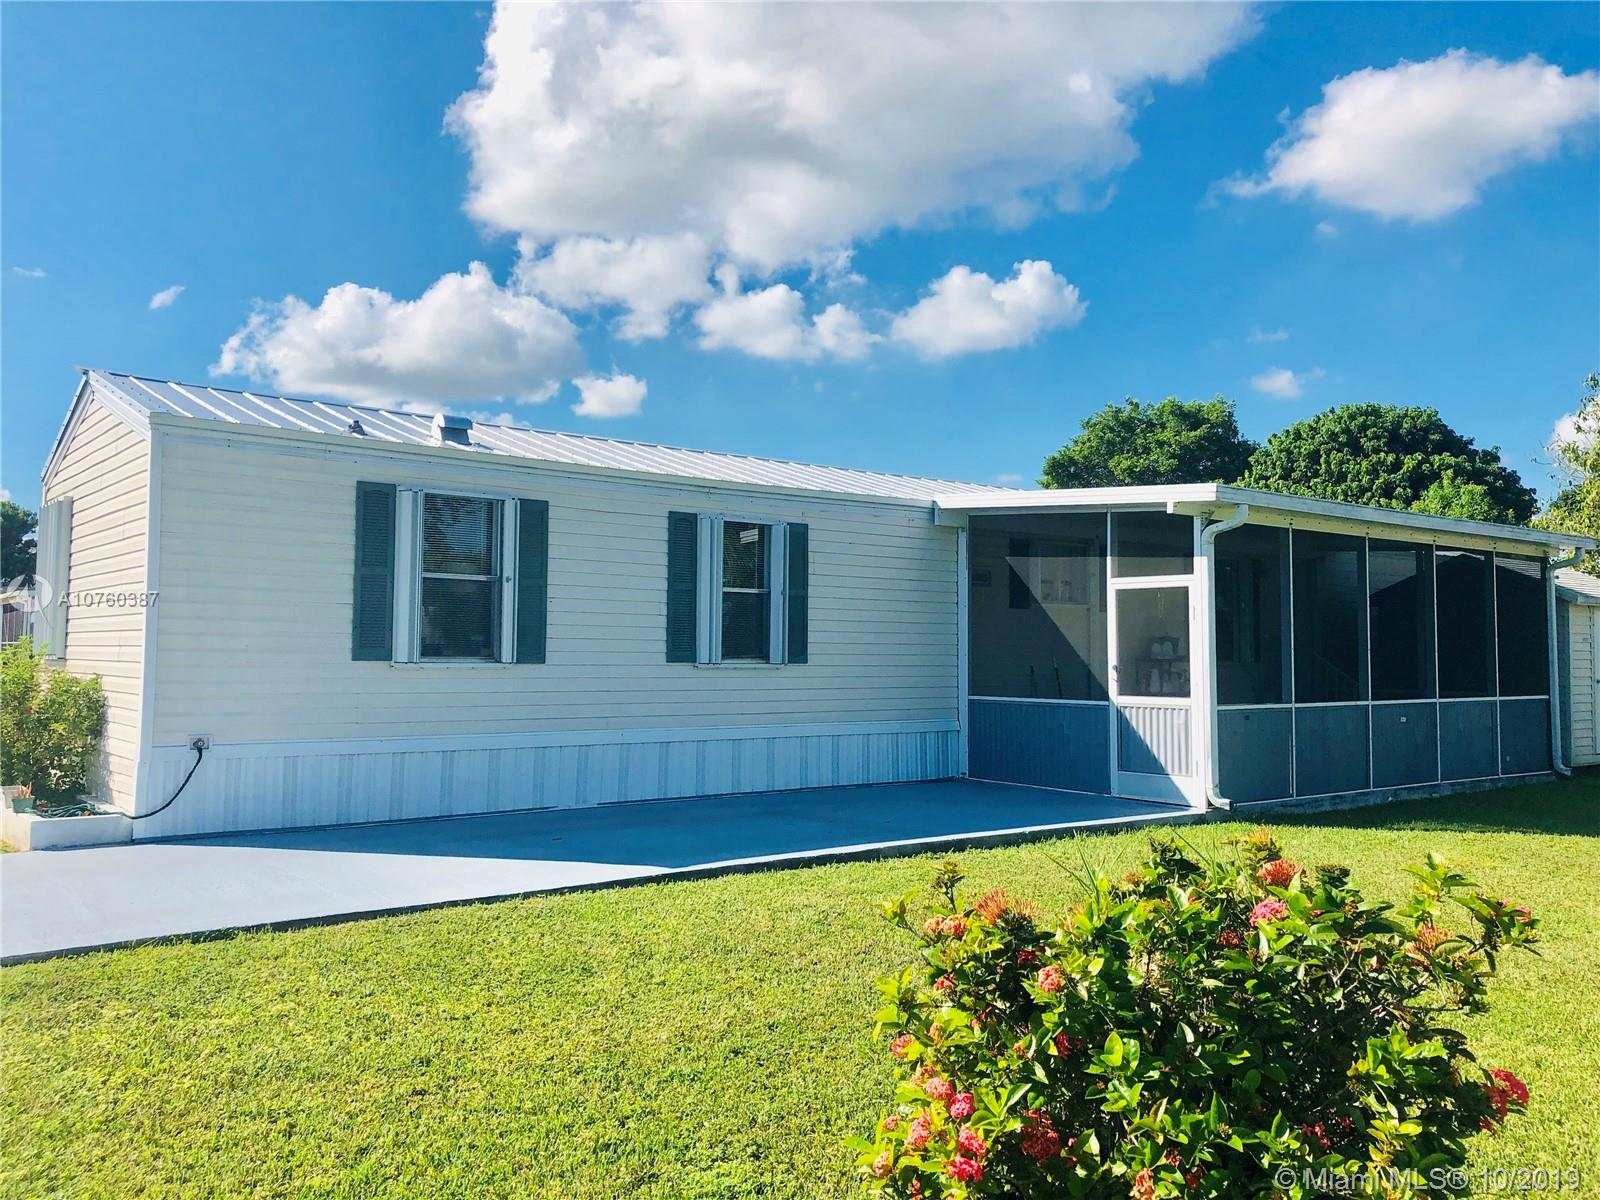 35303 SW 180th Ave, Homestead, FL 33034 - Homestead, FL real estate listing